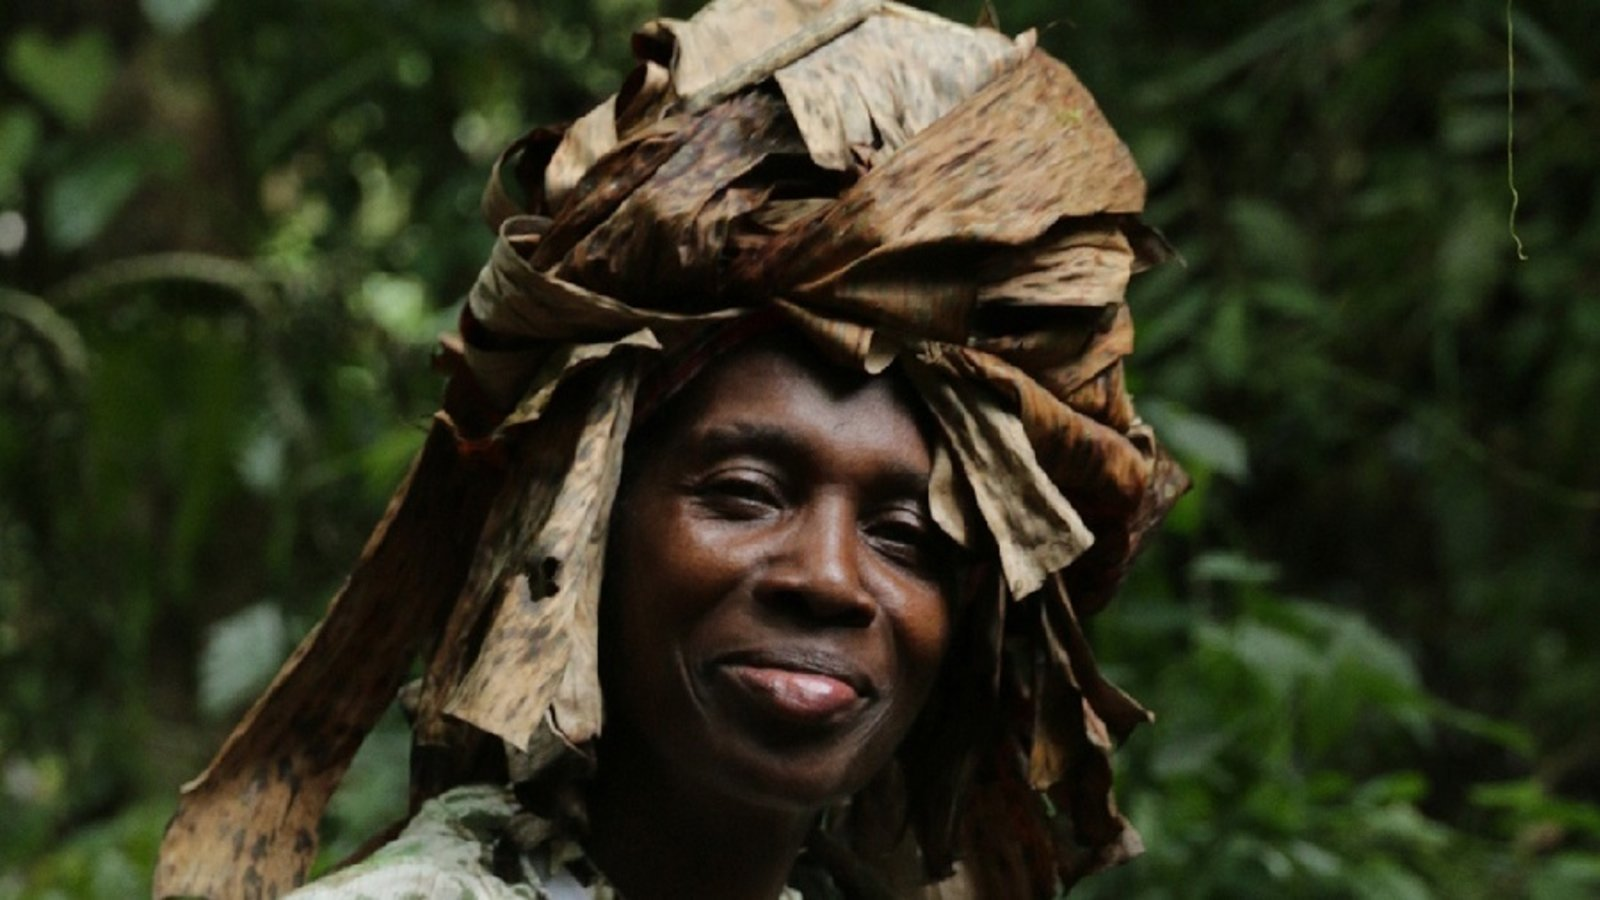 Queen Nanny: Legendary Maroon Chieftainess - Portrait of a Freedom Fighter